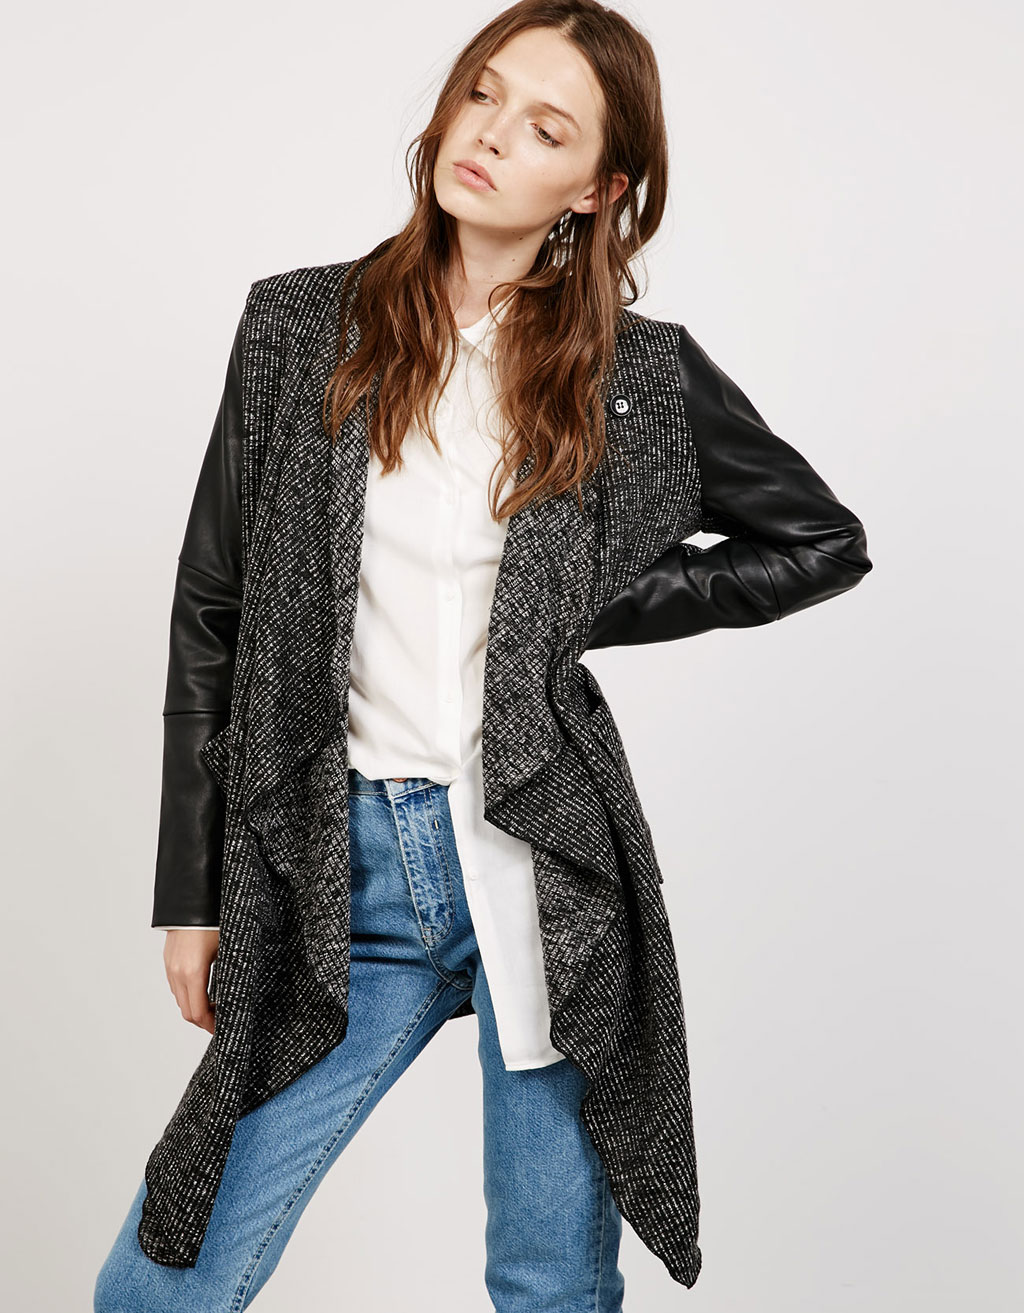 Draped fleece coat with imitation leather sleeves